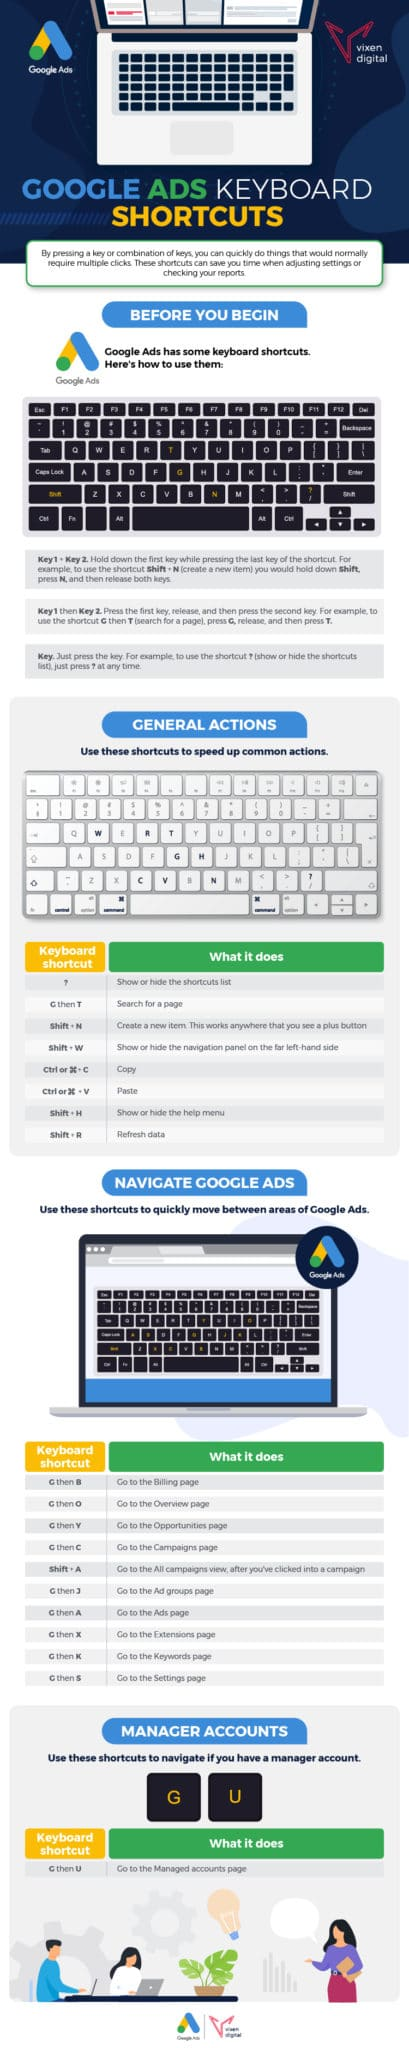 Google ads keyboard shortcuts infographic low resolution